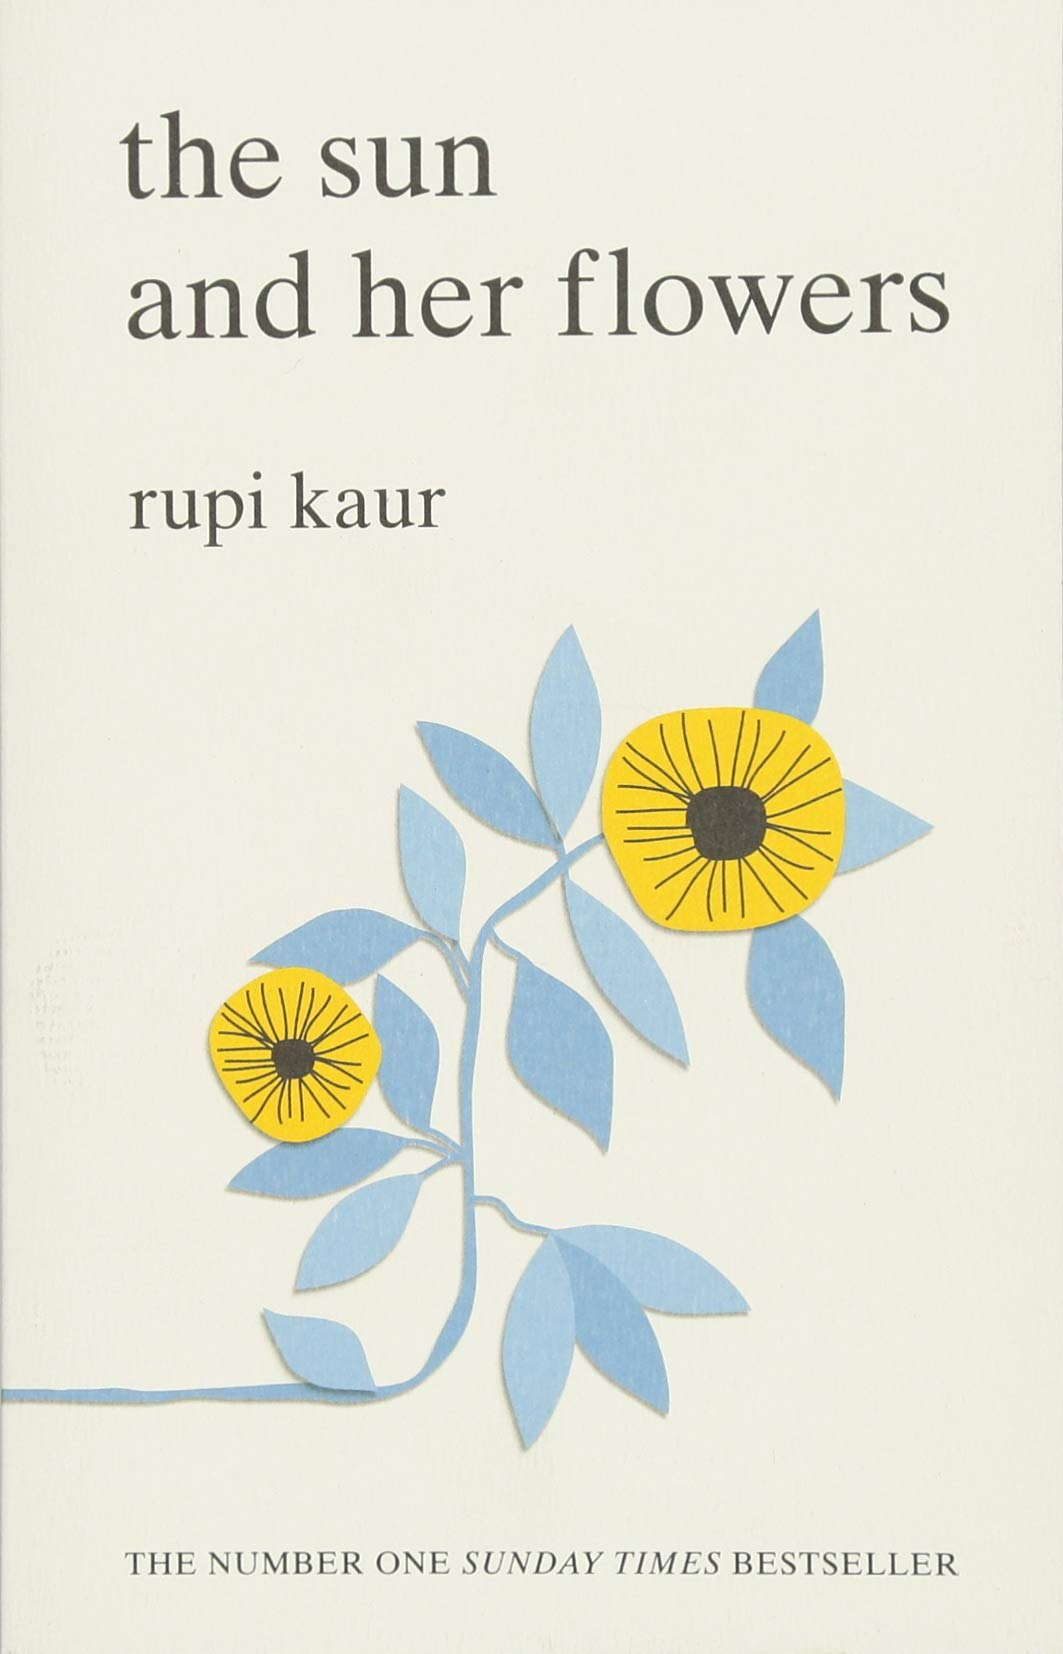 4) The Sun and Her Flowers - By Rupi Kaur